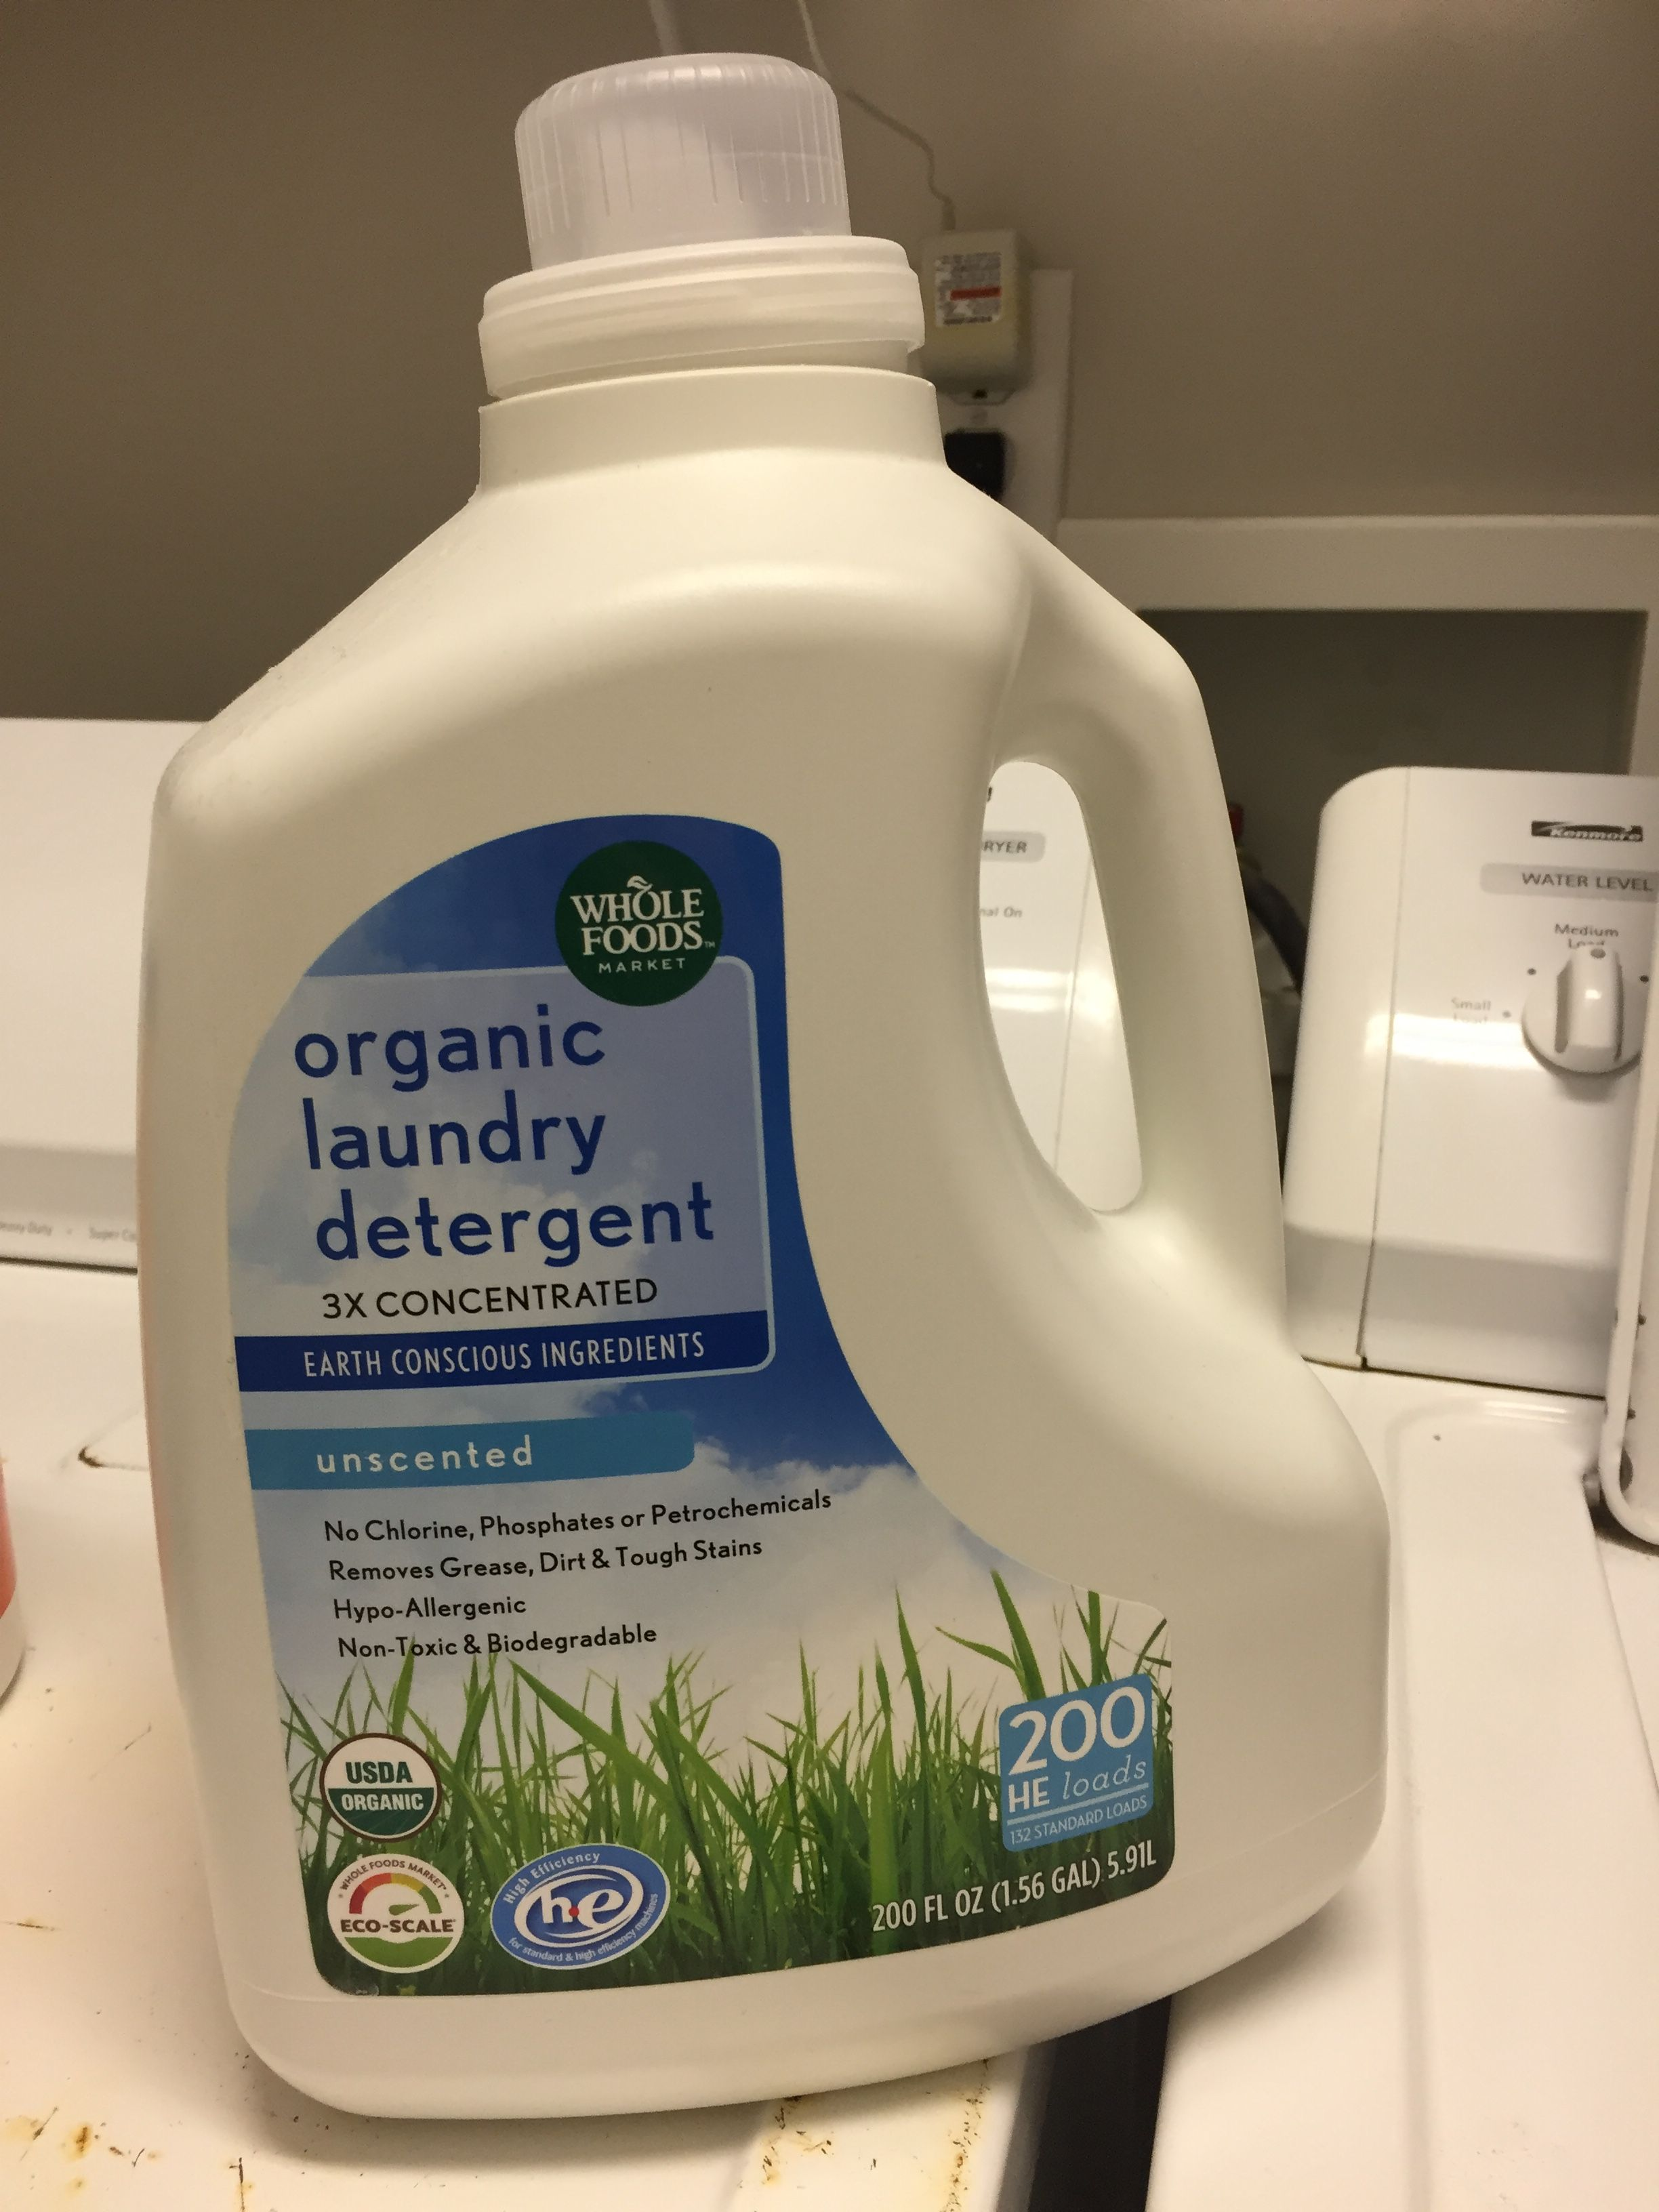 Laundry Detergent From Whole Foods Organic Laundry Detergent